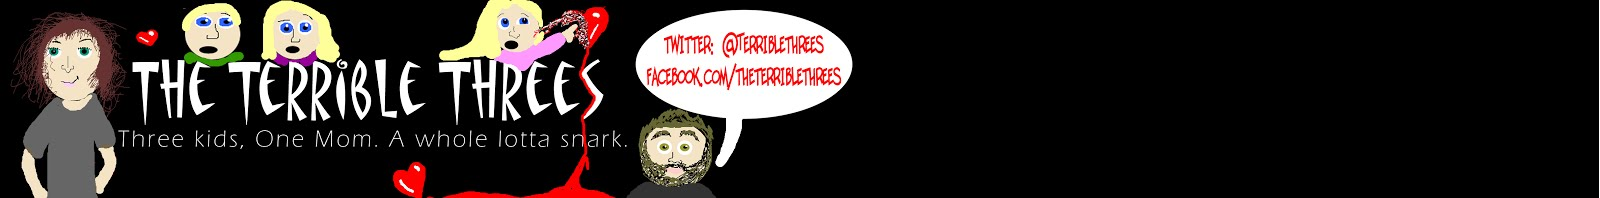 The Terrible Threes- Three kids, one exhausted mom. A whole lotta snark.